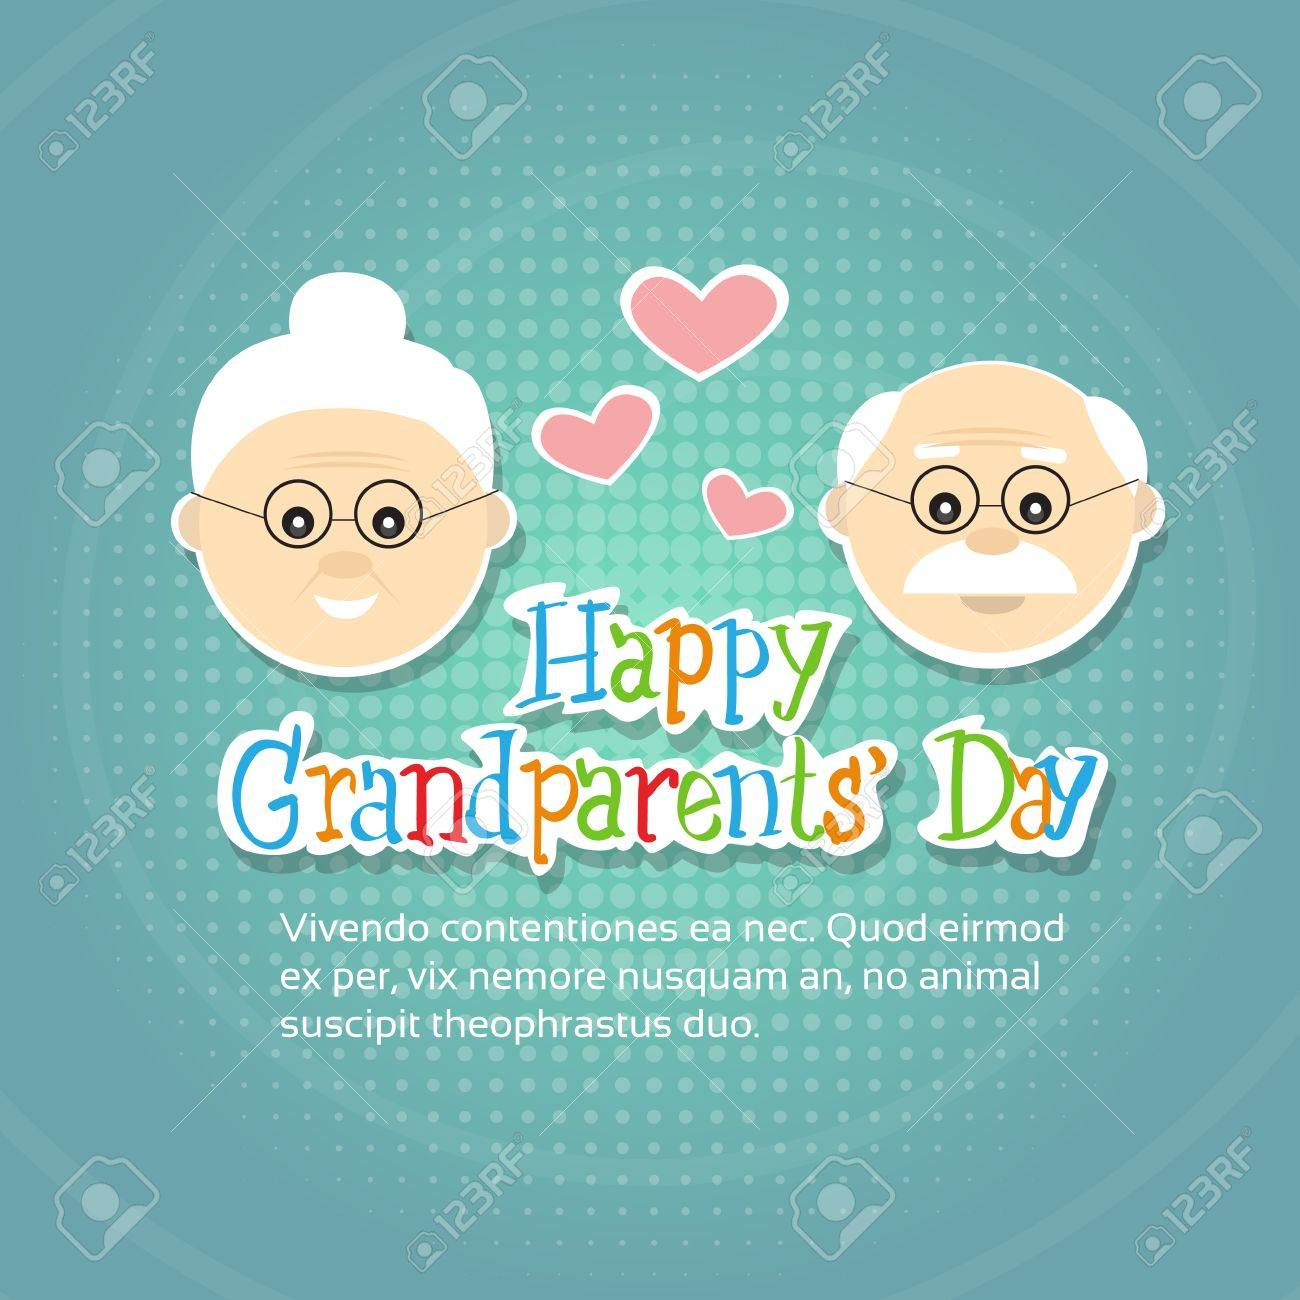 Grandfather with grandmother happy grandparents day greeting grandfather with grandmother happy grandparents day greeting card banner flat vector illustration stock vector 62051914 m4hsunfo